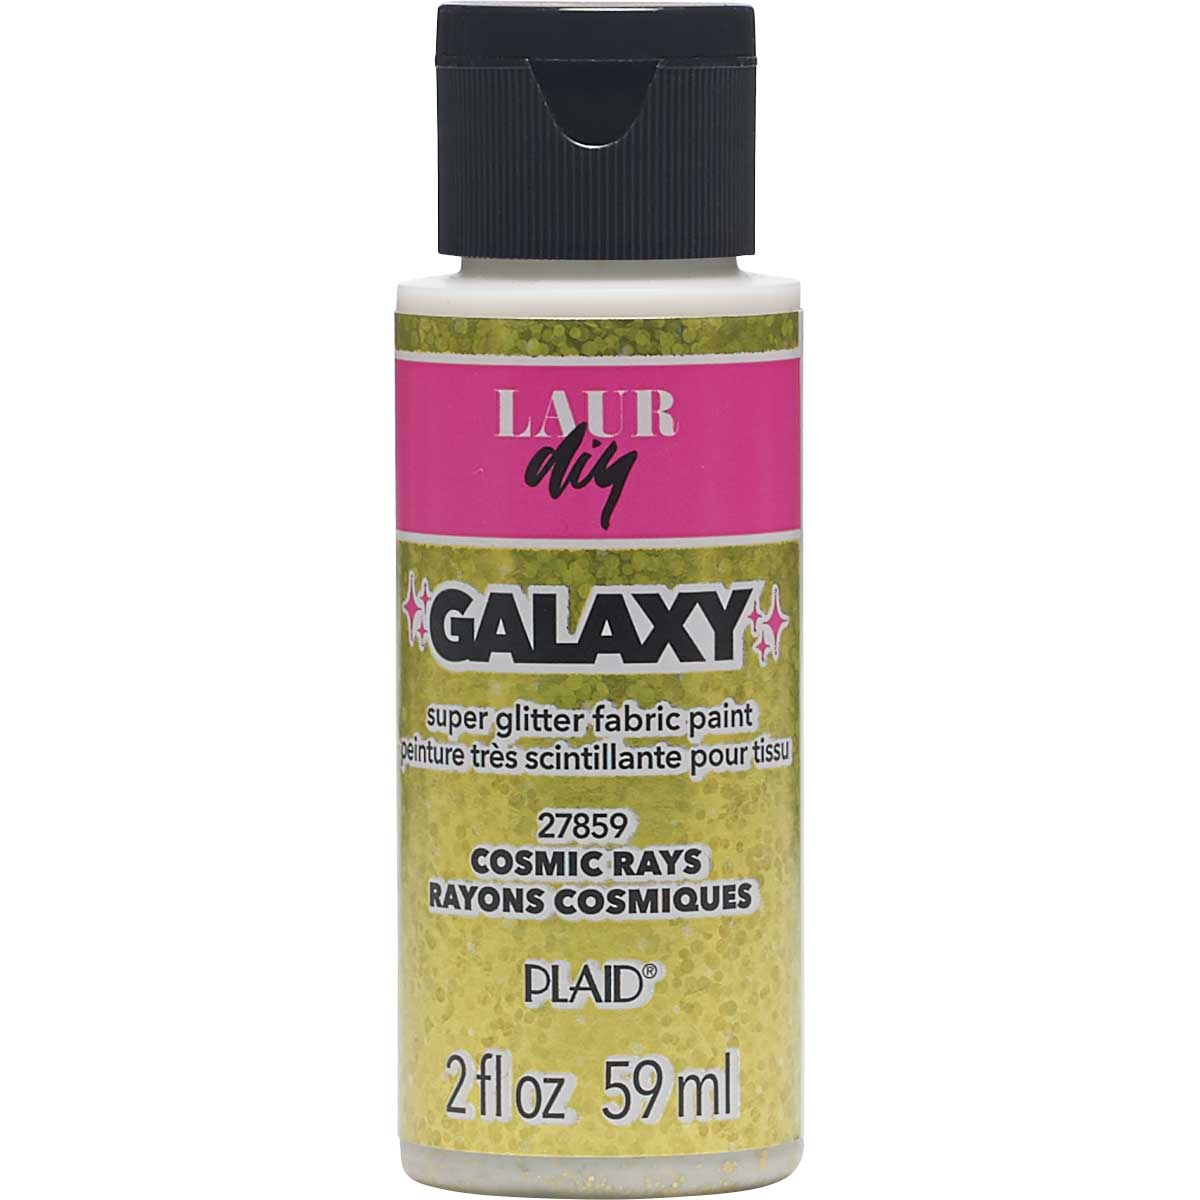 LaurDIY ® Galaxy Glitter Fabric Paint - Cosmic Rays, 2 oz.